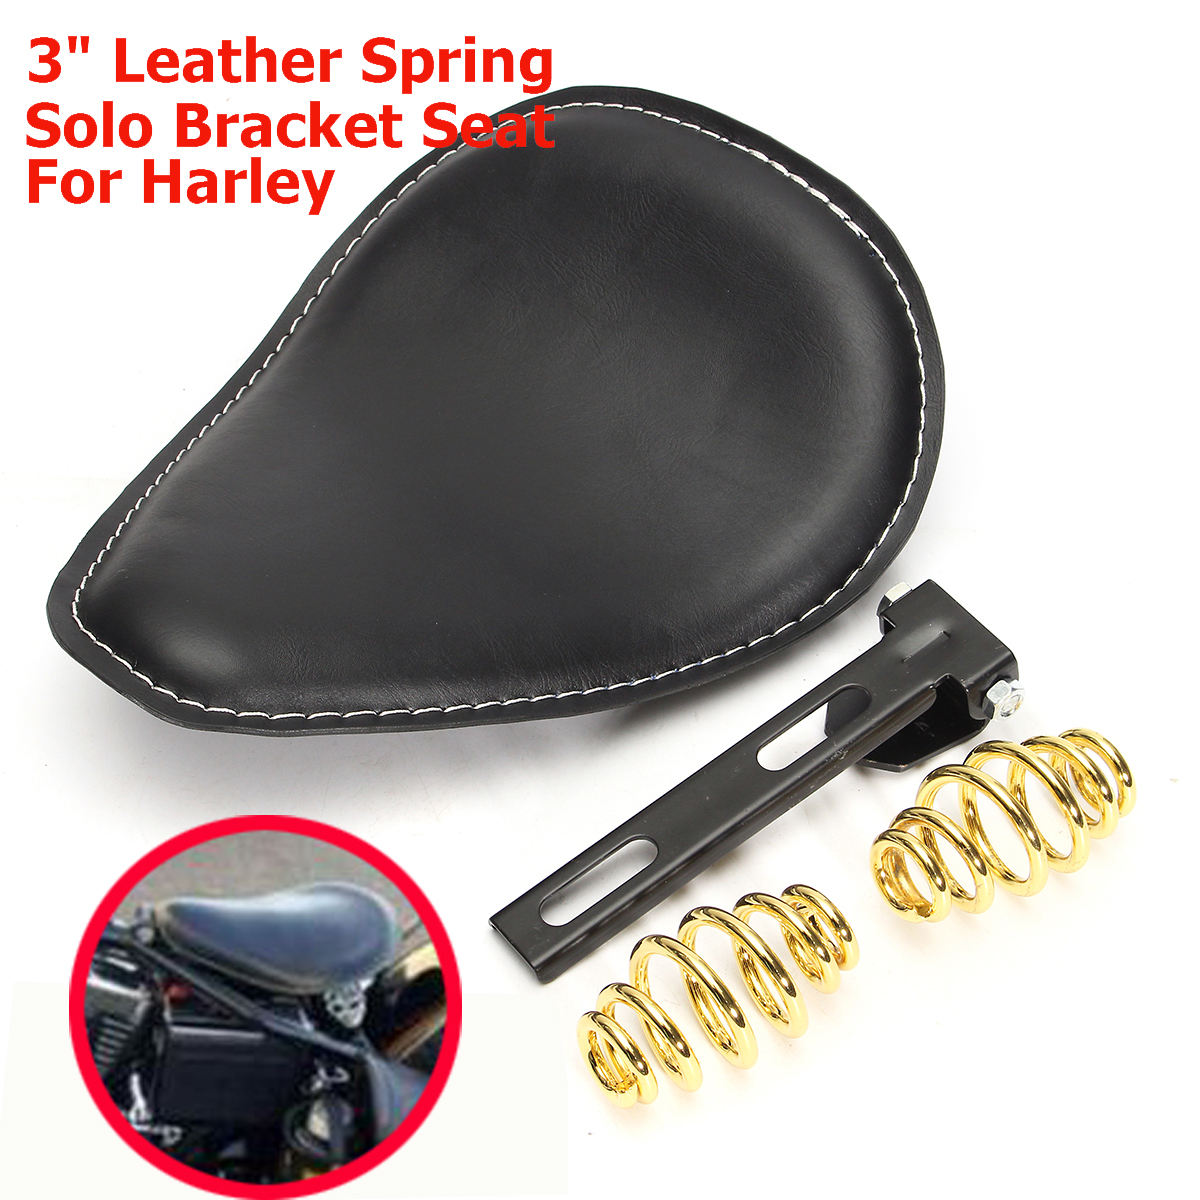 Motorcycle 3inch Leather Spring Solo Bracket Seat For Harley Chopper Bobber Custom